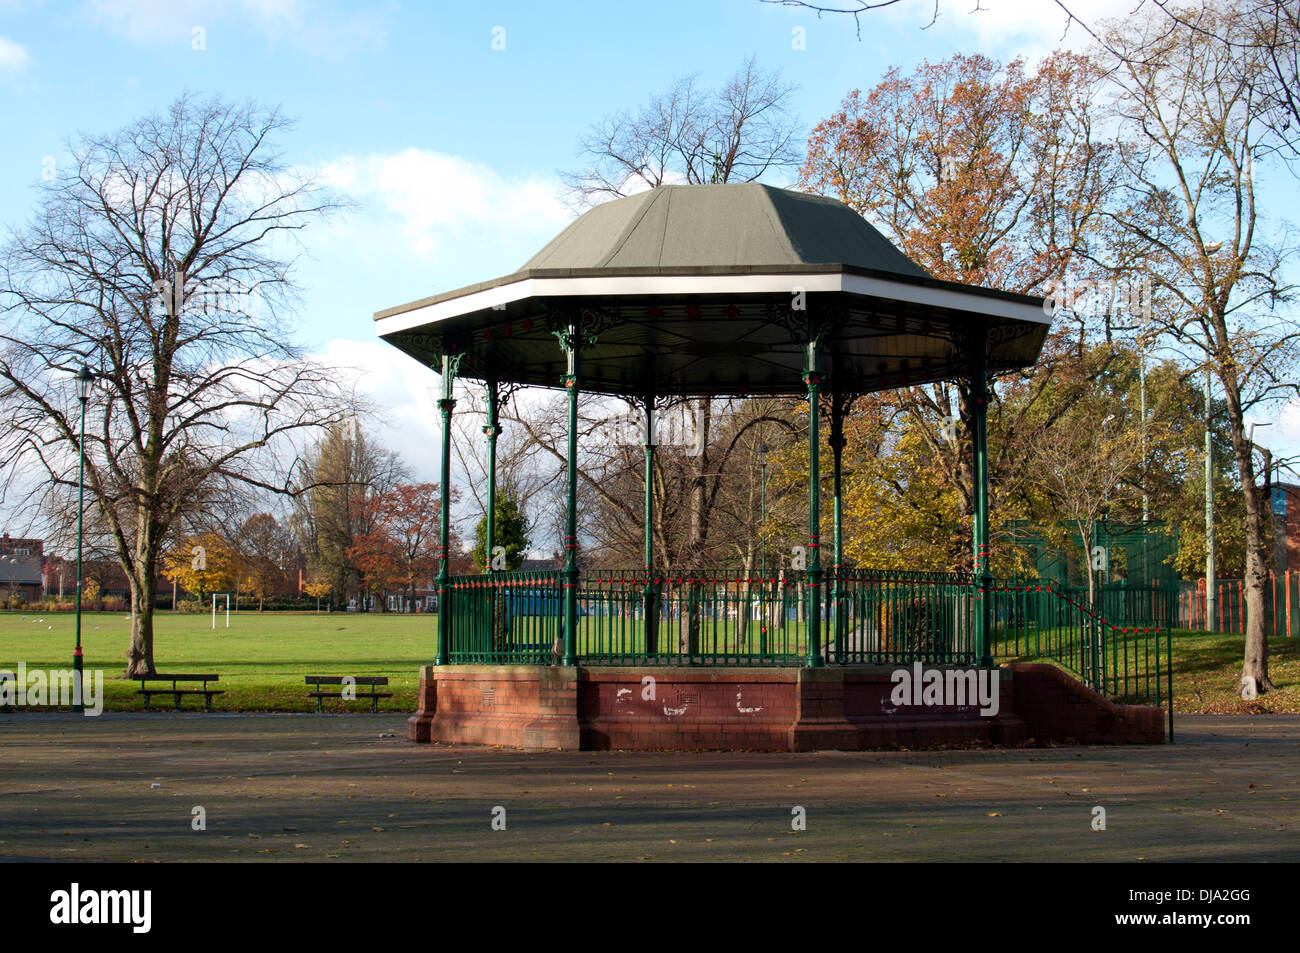 The bandstand in Sparkhill Park, Birmingham, UK - Stock Image